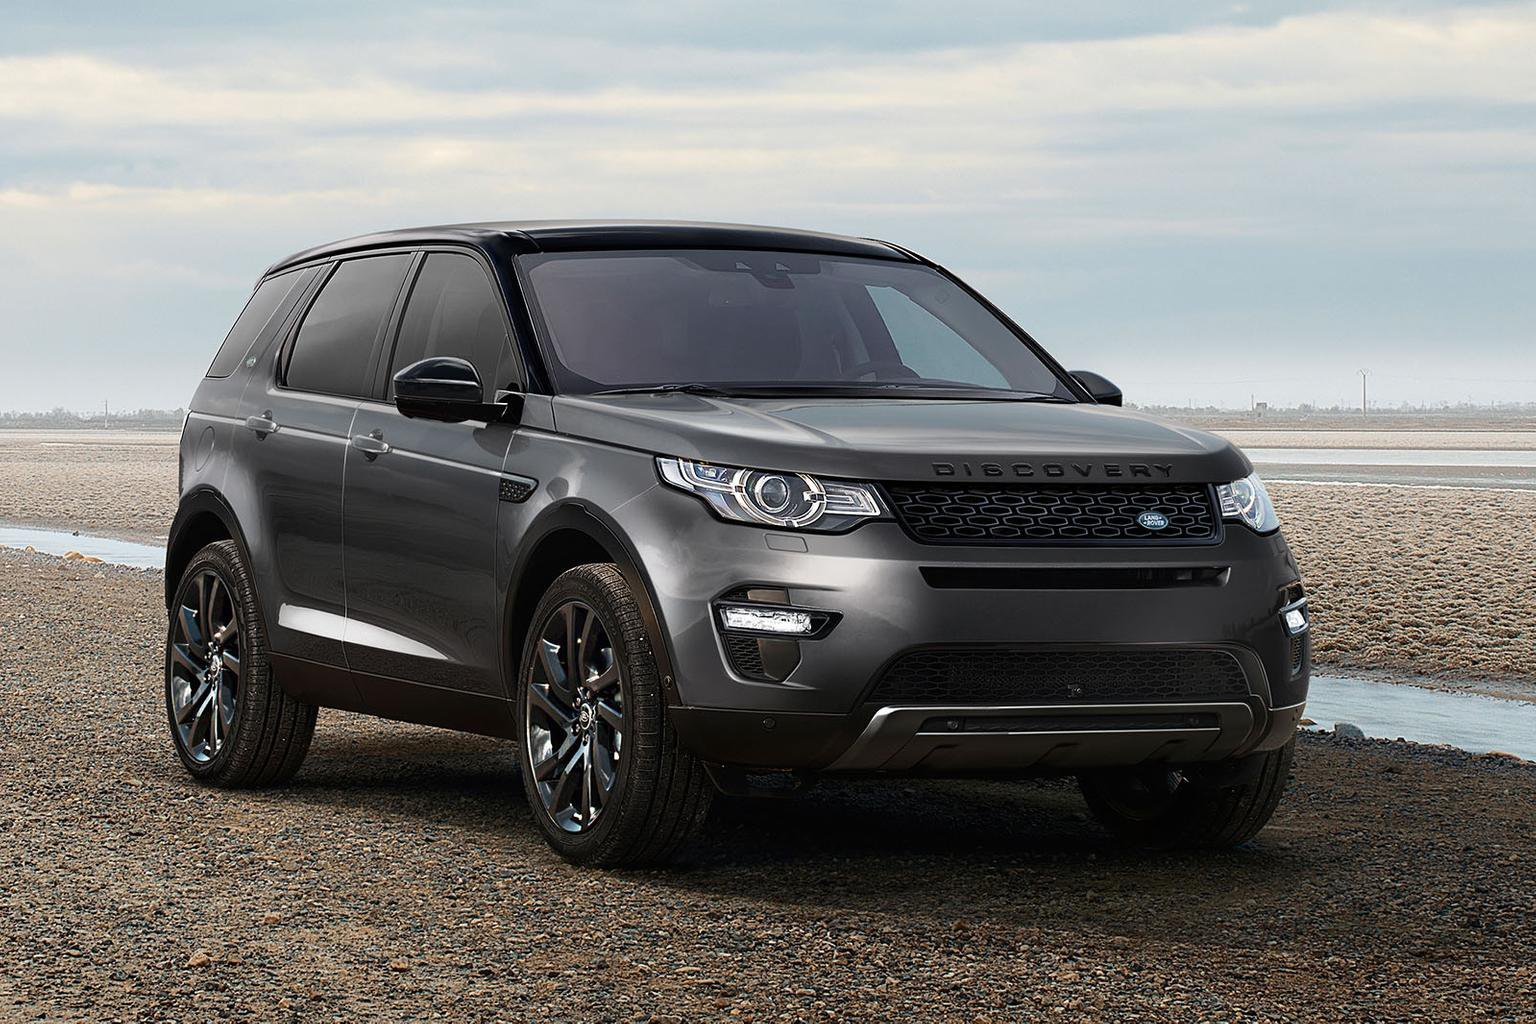 Land Rover Discovery Sport gets new tech and style for 2017